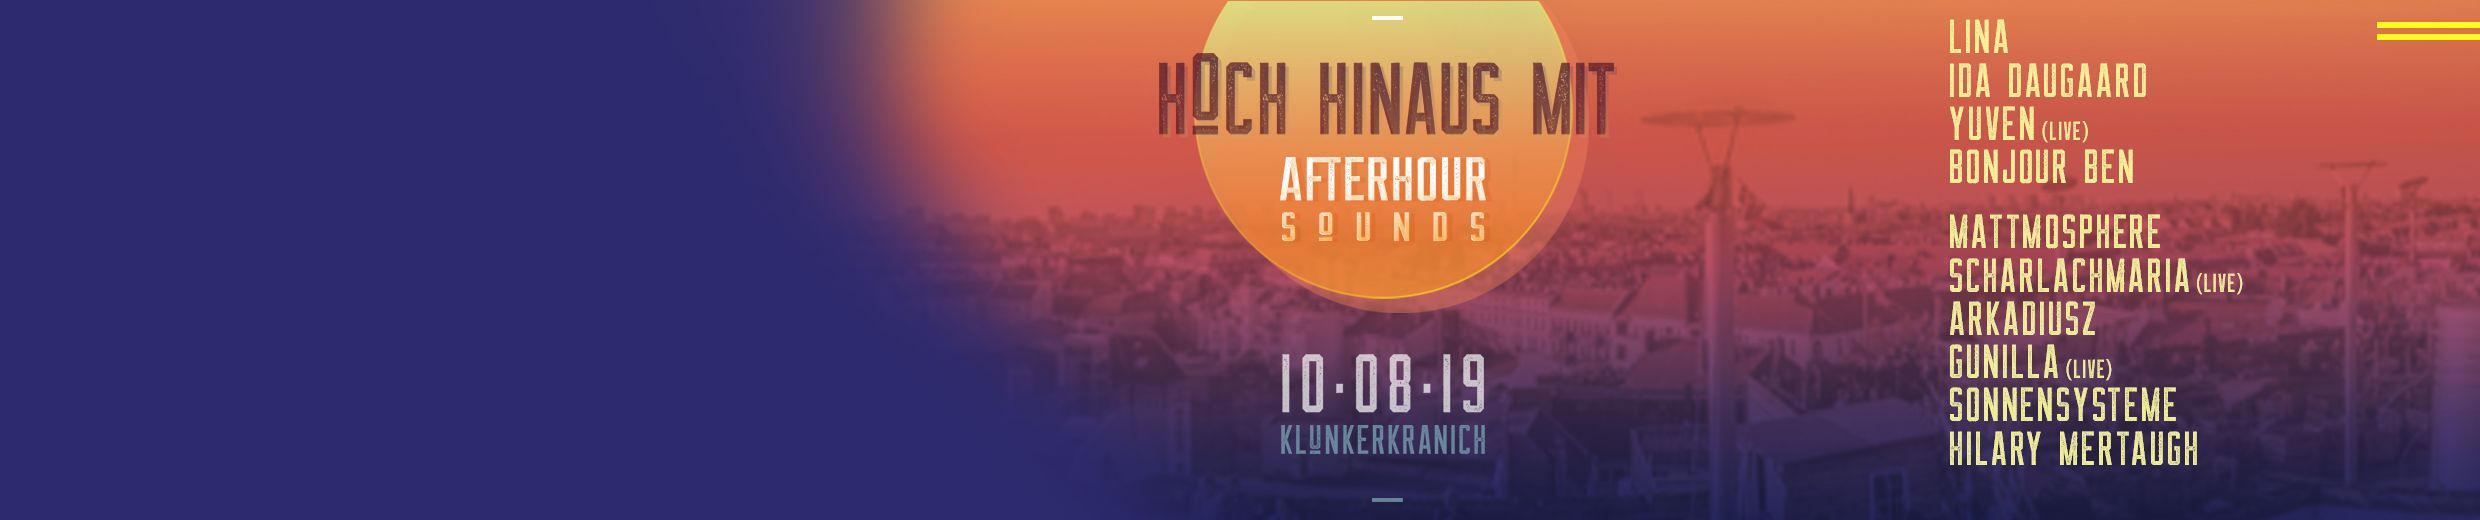 Unueberlegt Presents Afterhour Sounds Podcast Nr 9 By Afterhour